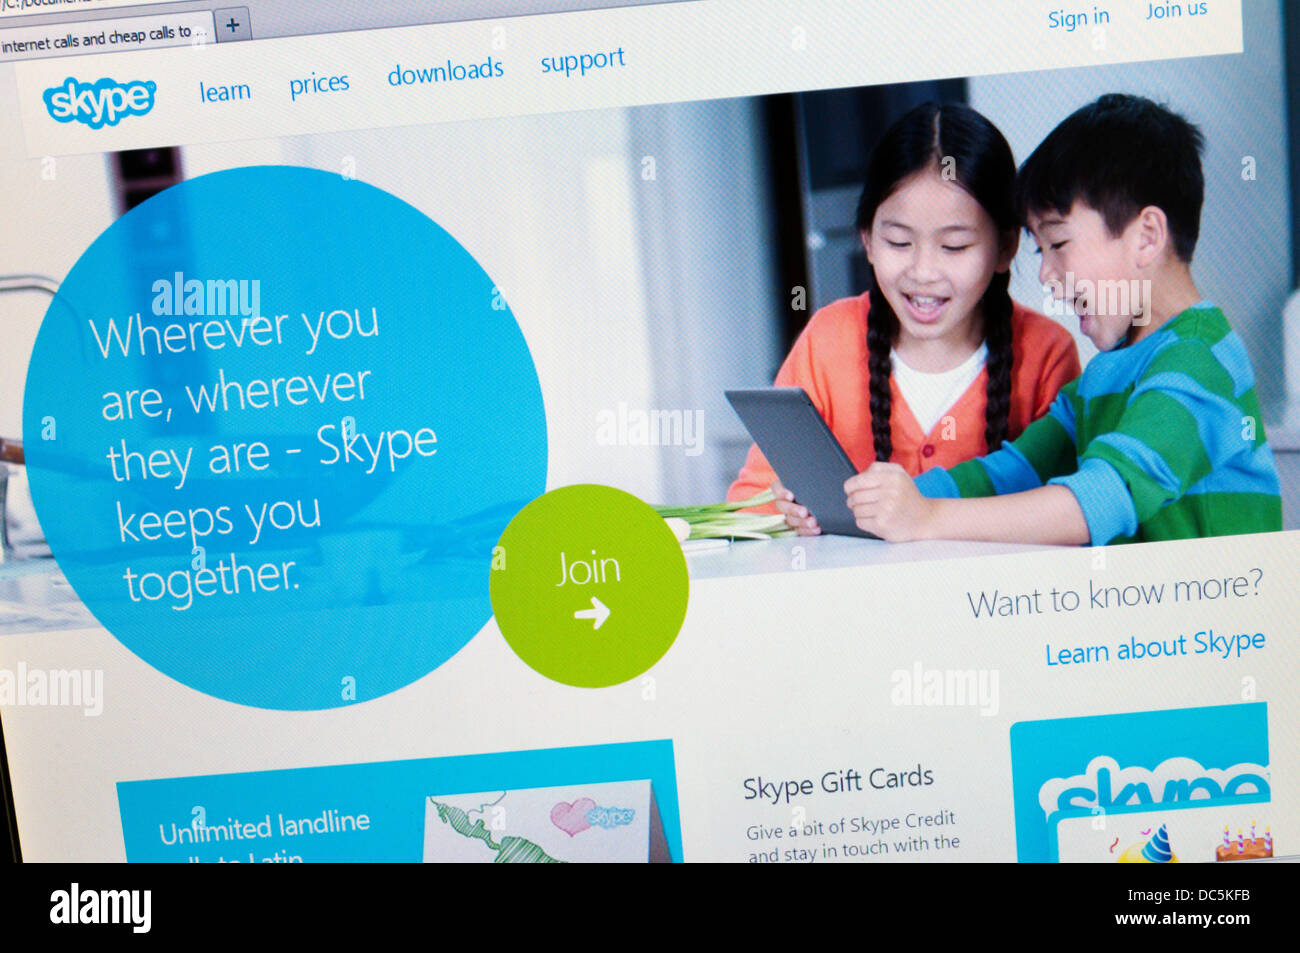 La page d'accueil du site Web de Skype. Photo Stock